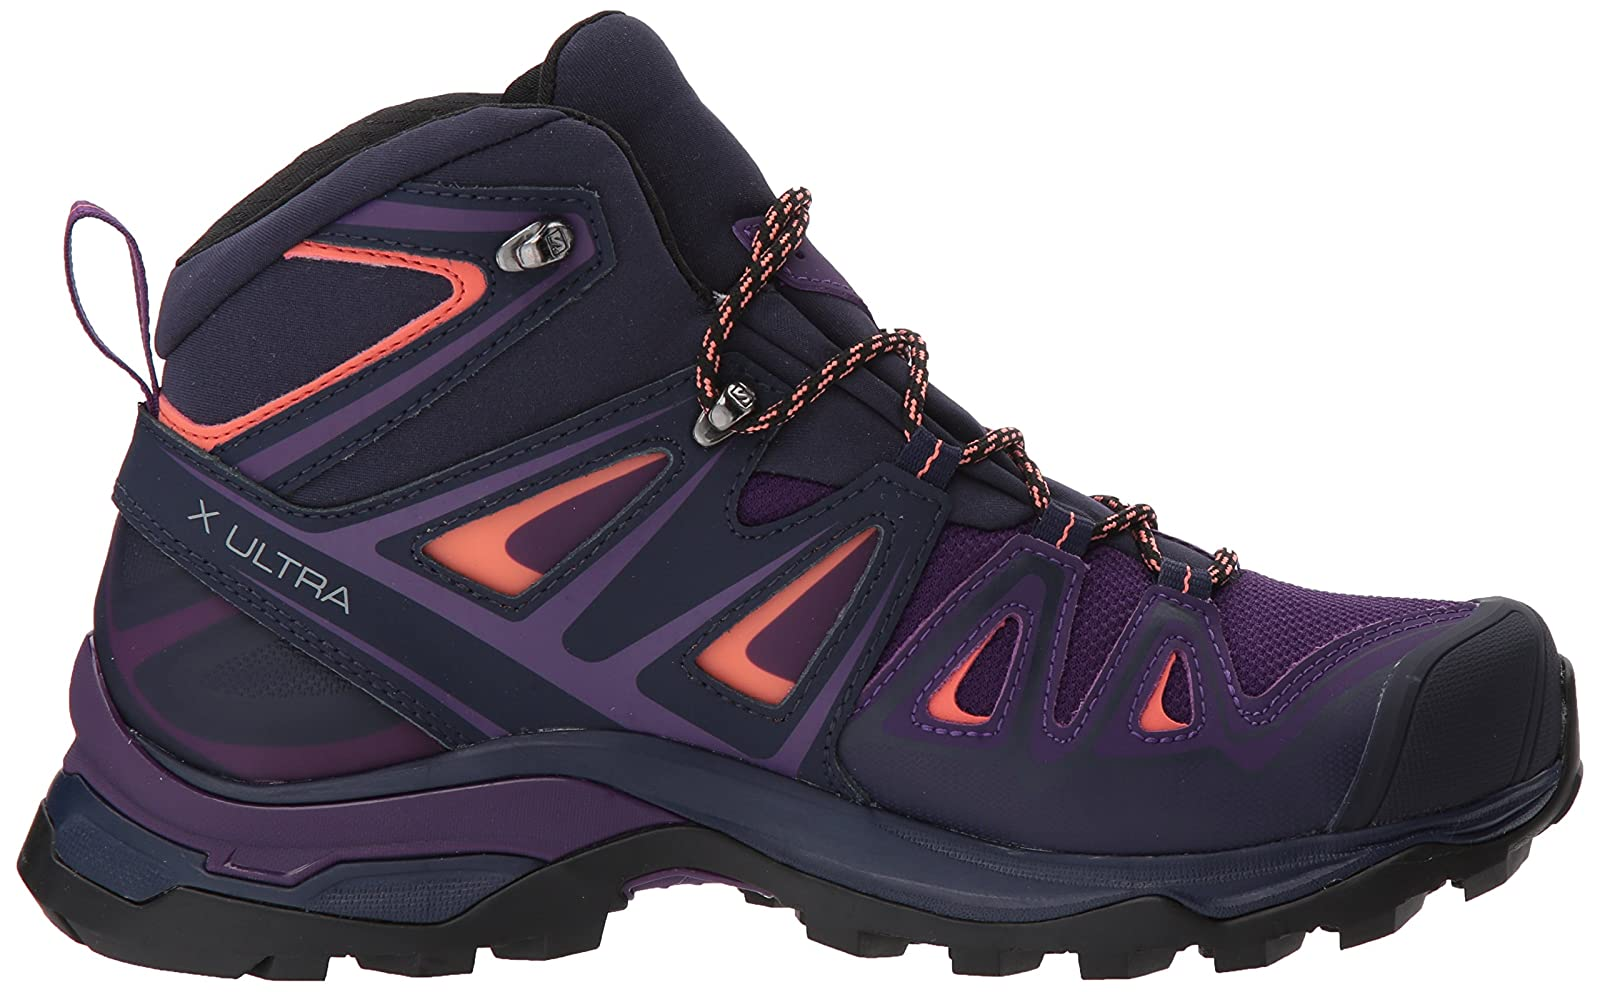 Salomon Women's X Ultra 3 Mid GTX W Hiking Boot 401346 - 7